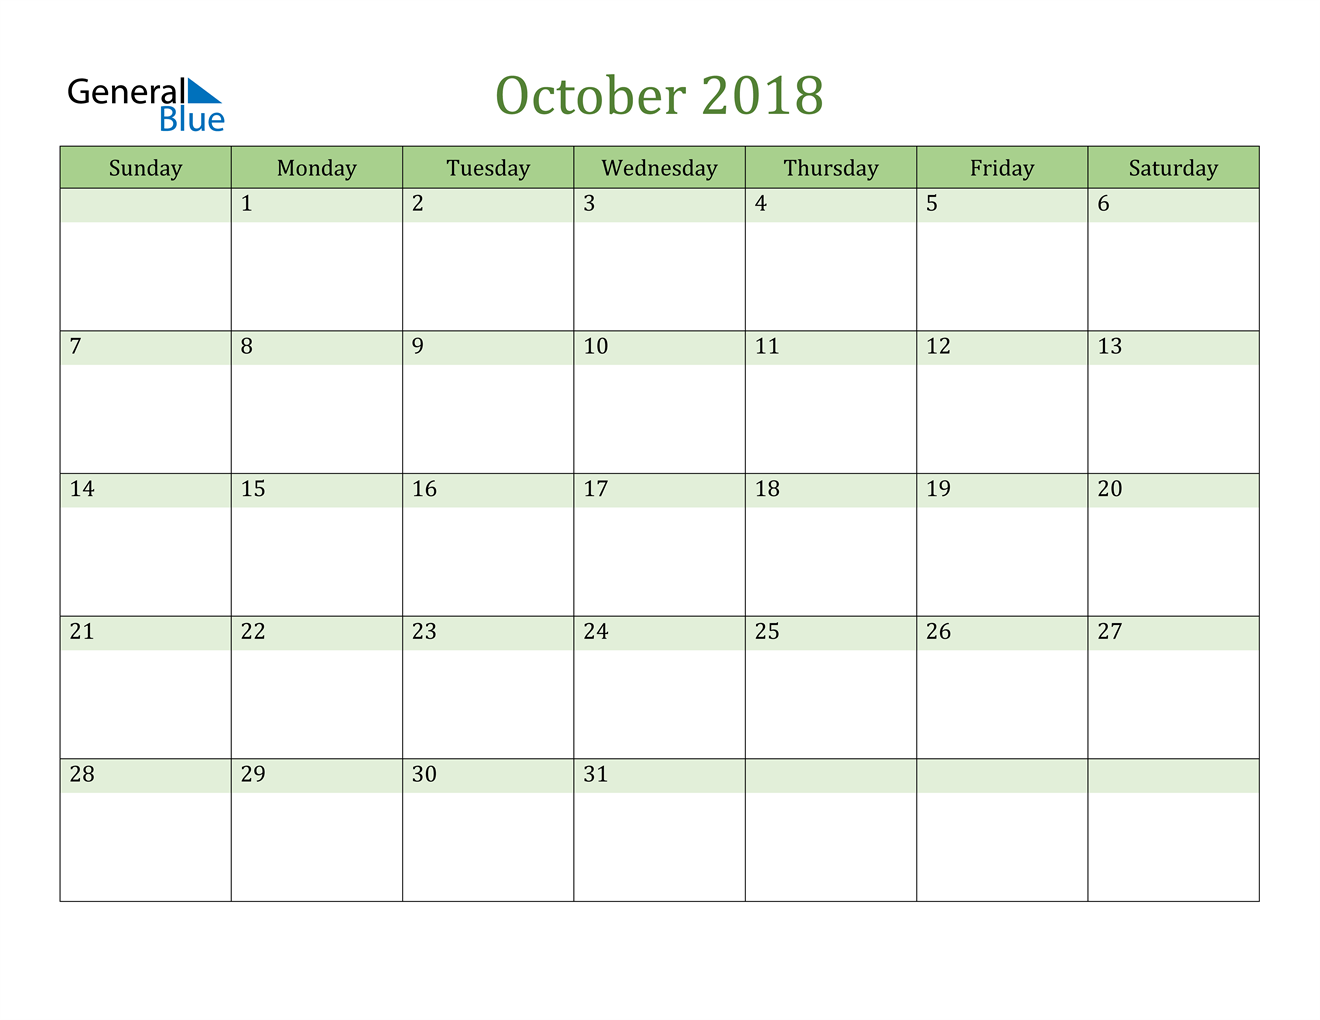 Image of October 2018 Cool and Relaxing Green Calendar Calendar